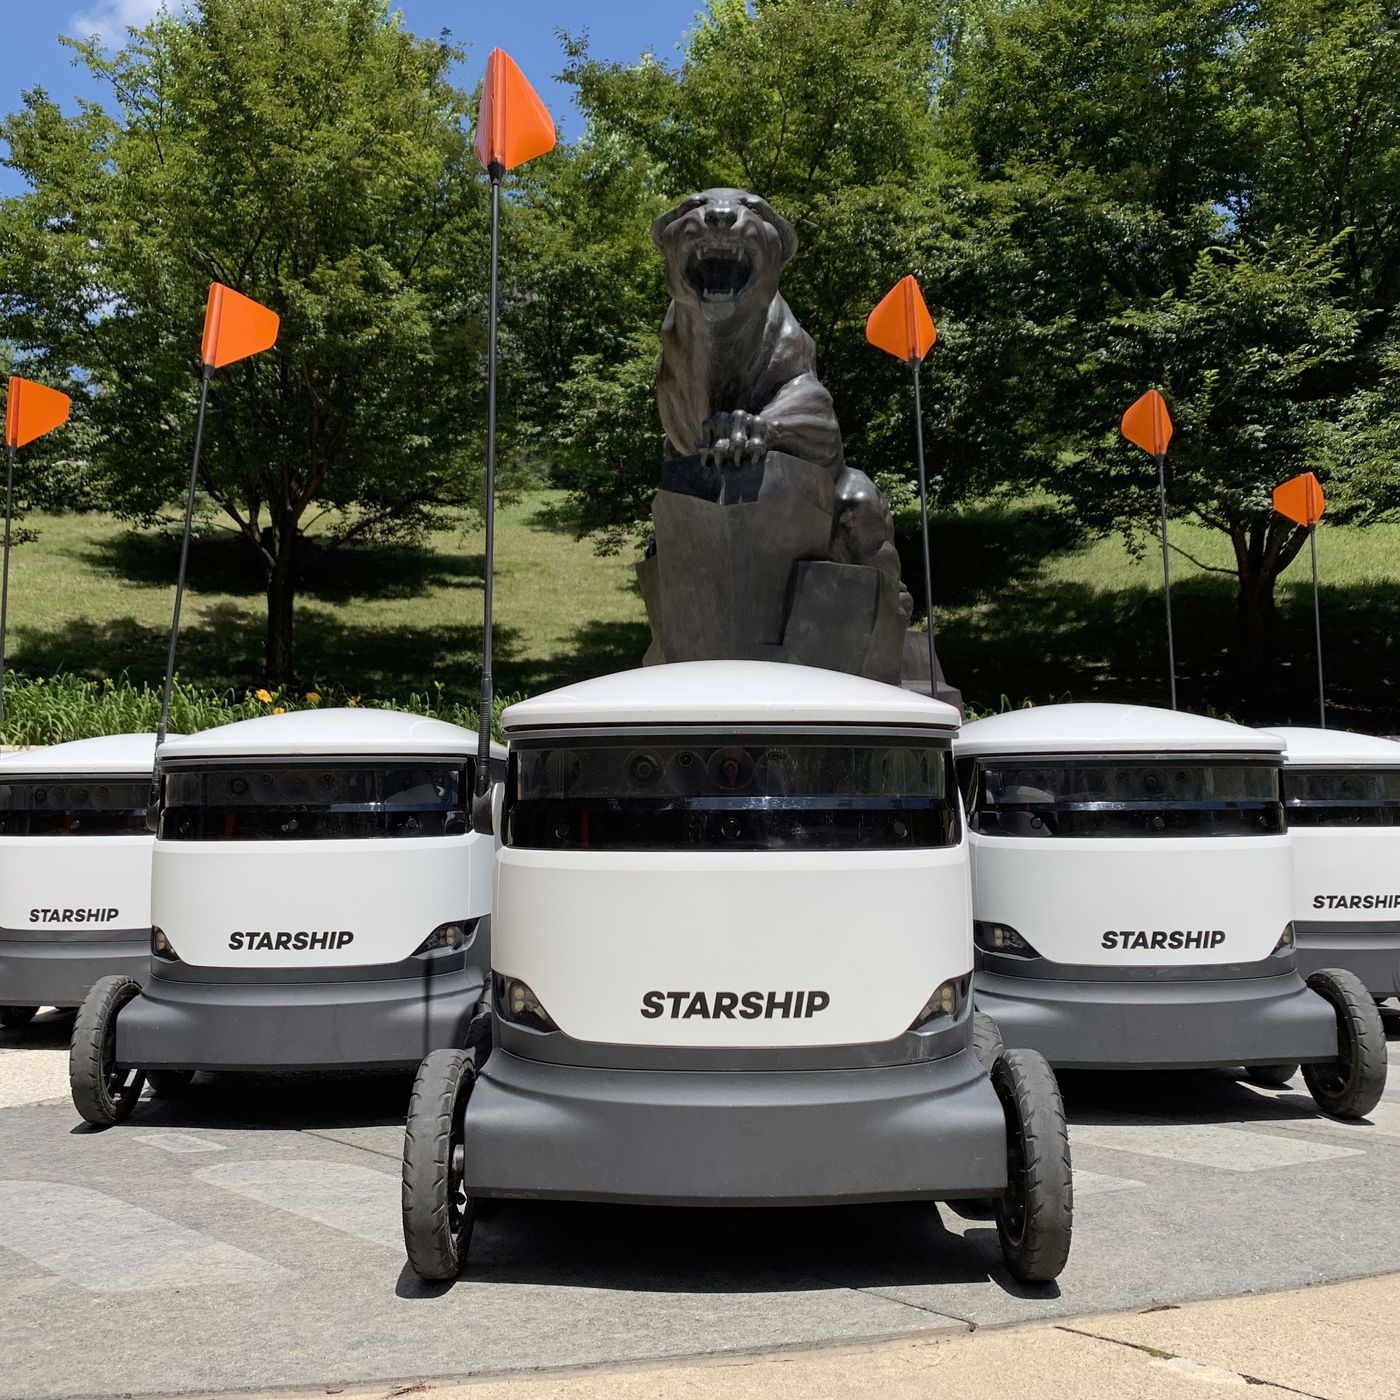 Thousands Of Autonomous Delivery Robots Are About To Descend On Us College Campuses The Verge